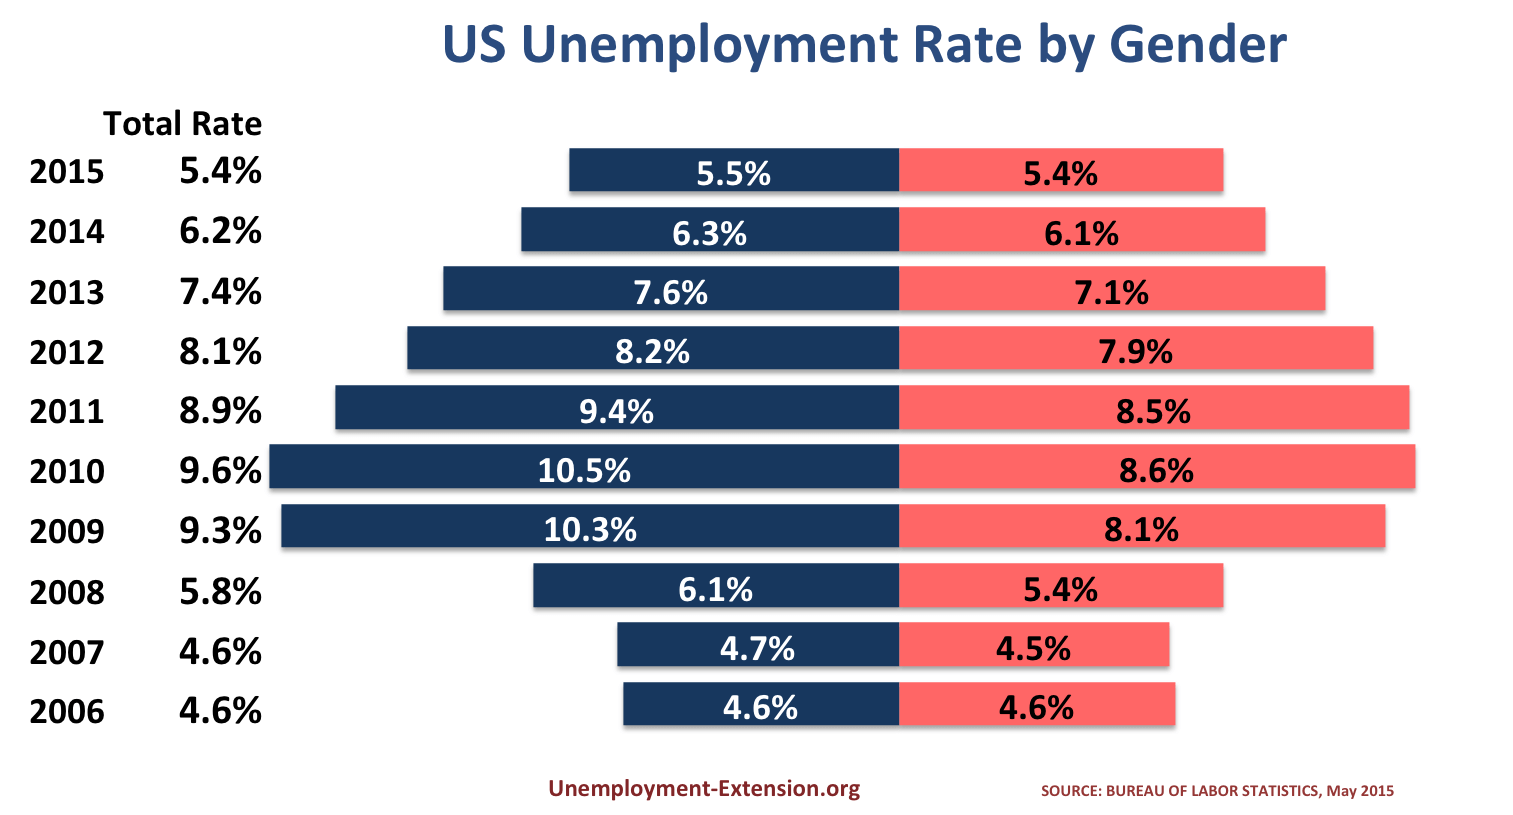 US Unemployment Rate by Gender, May 2015